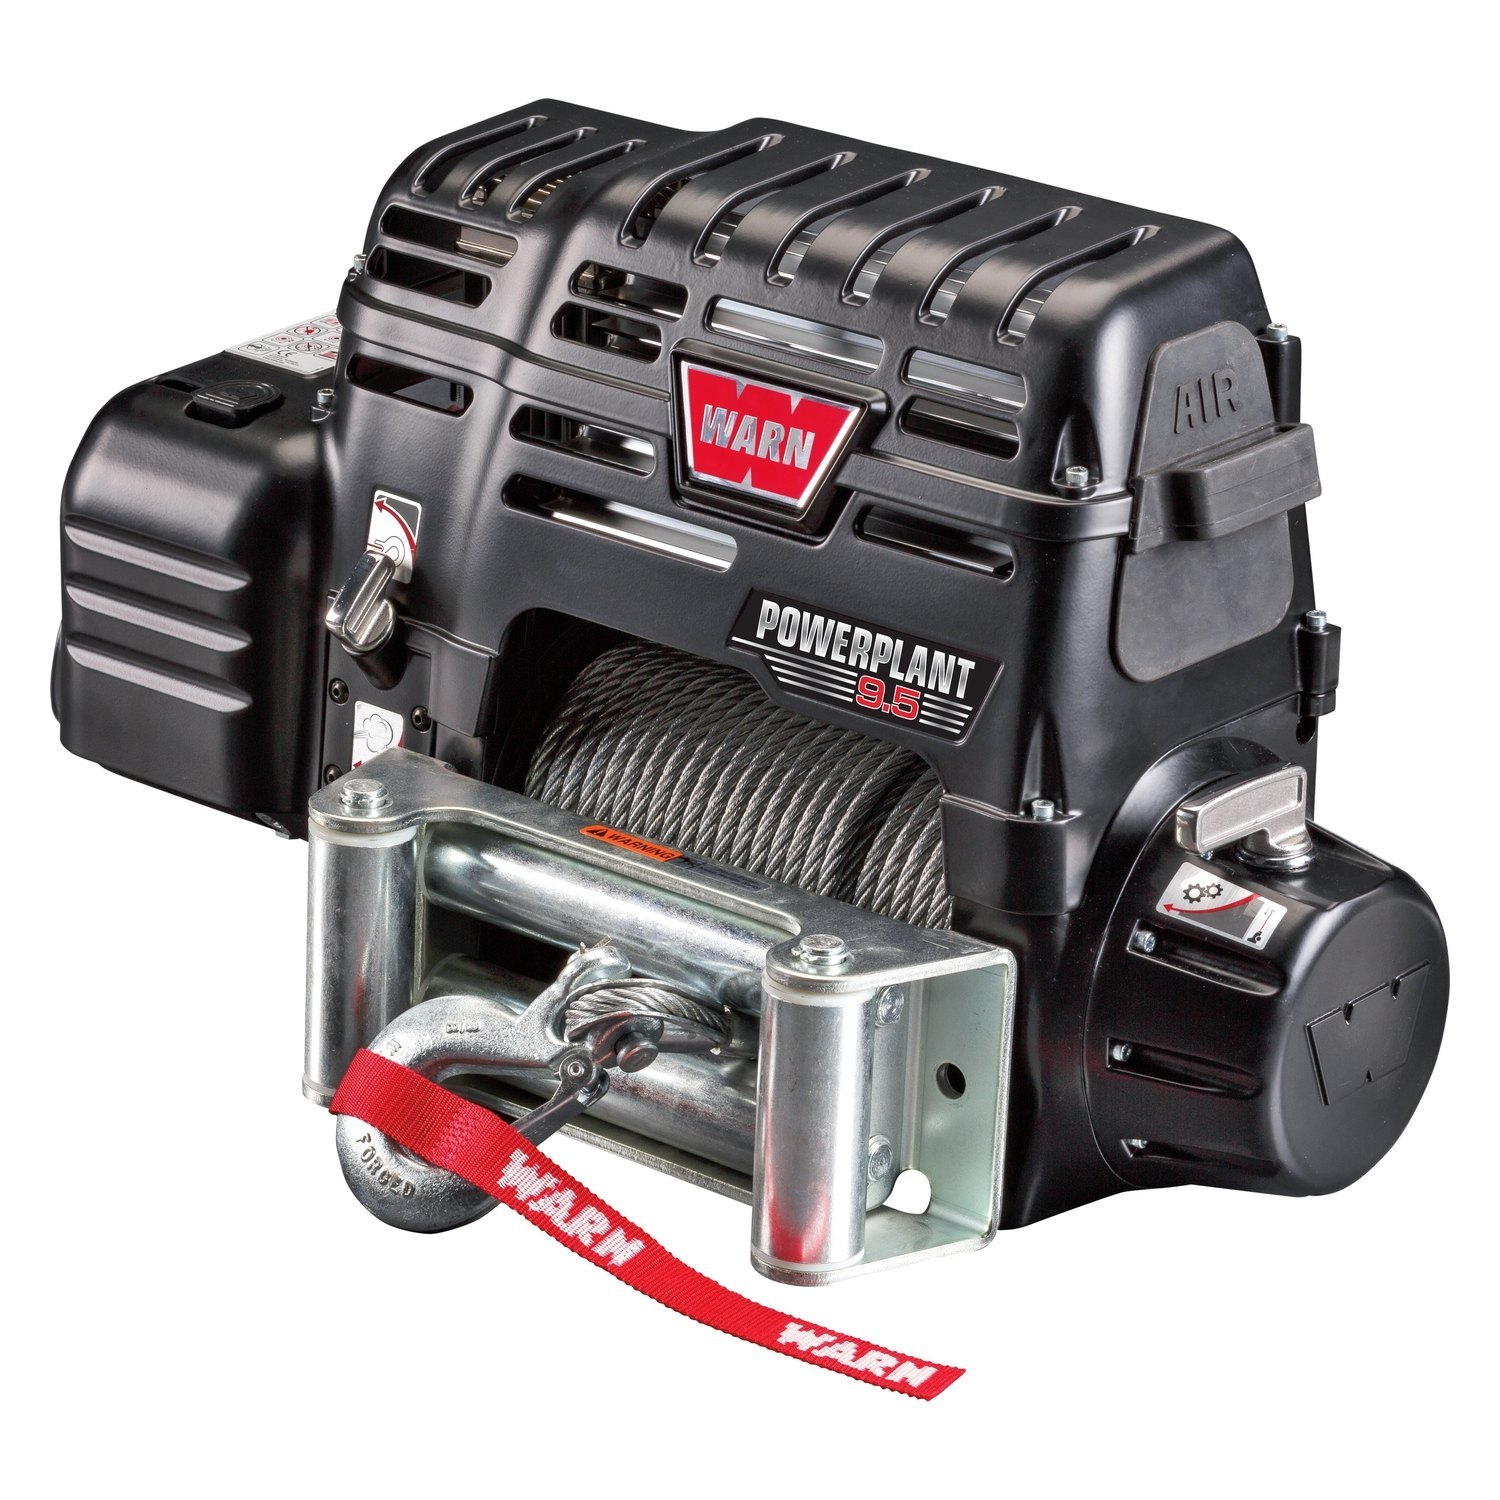 WARN® 91800 - PowerPlant Dual Force HP 9500 lbs Electric Winch with on